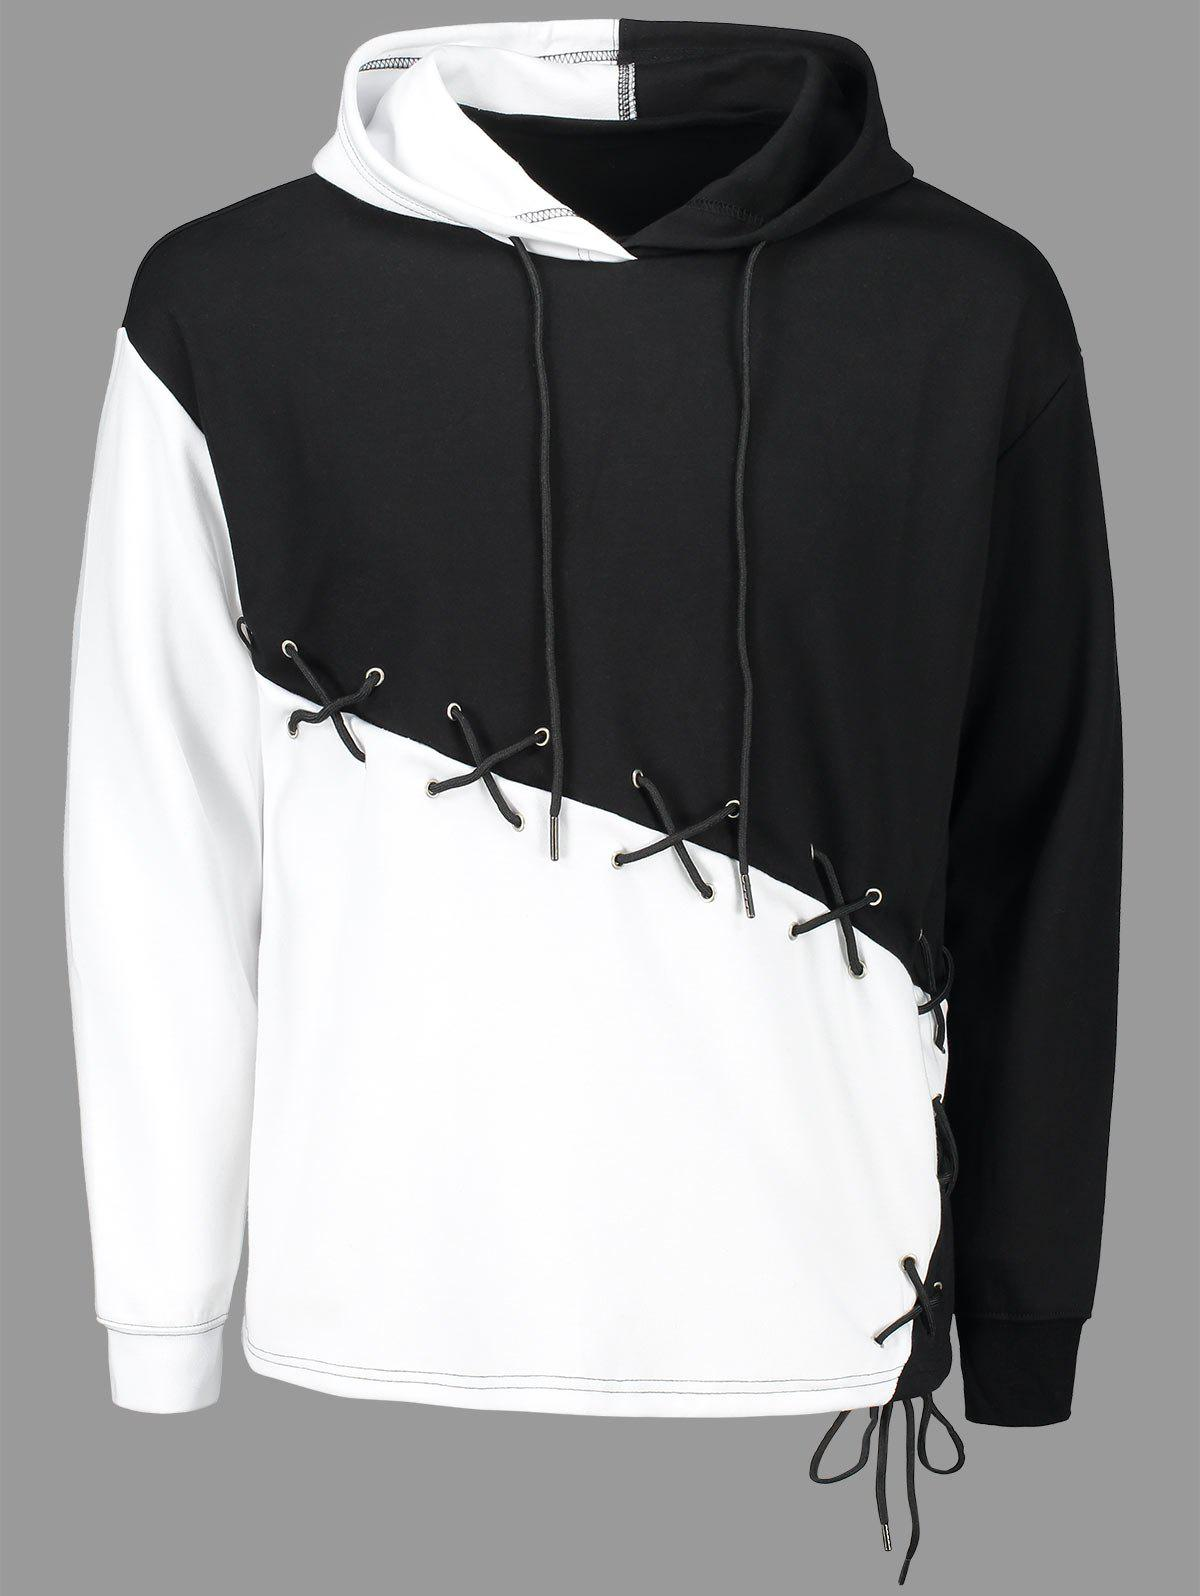 53 Off 2019 Criss Cross Lace Up Color Block Hoodie